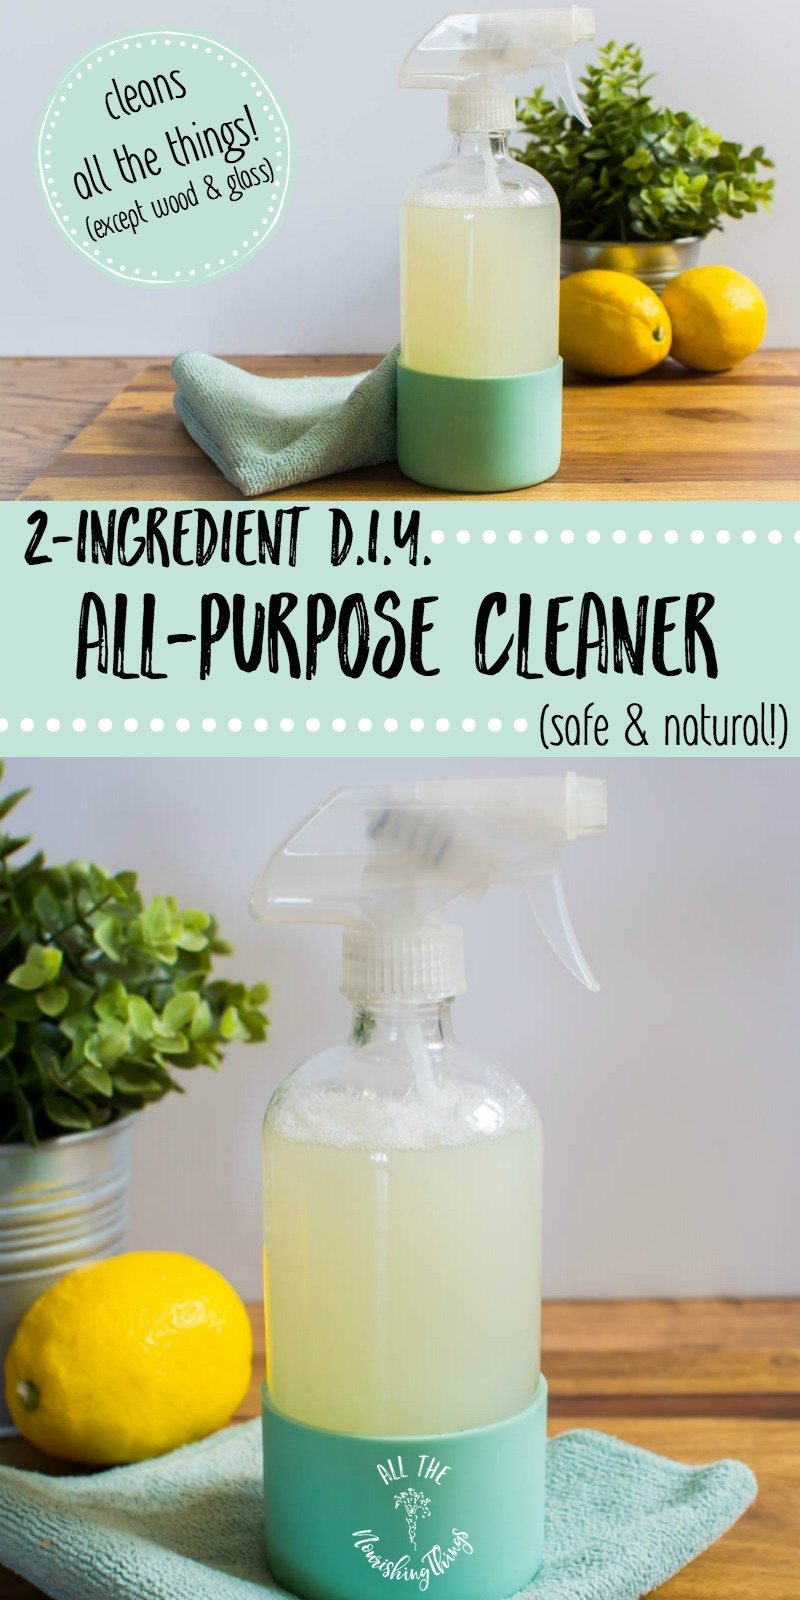 2-ingredient diy all-purpose cleaner in glass bottle with text overlay